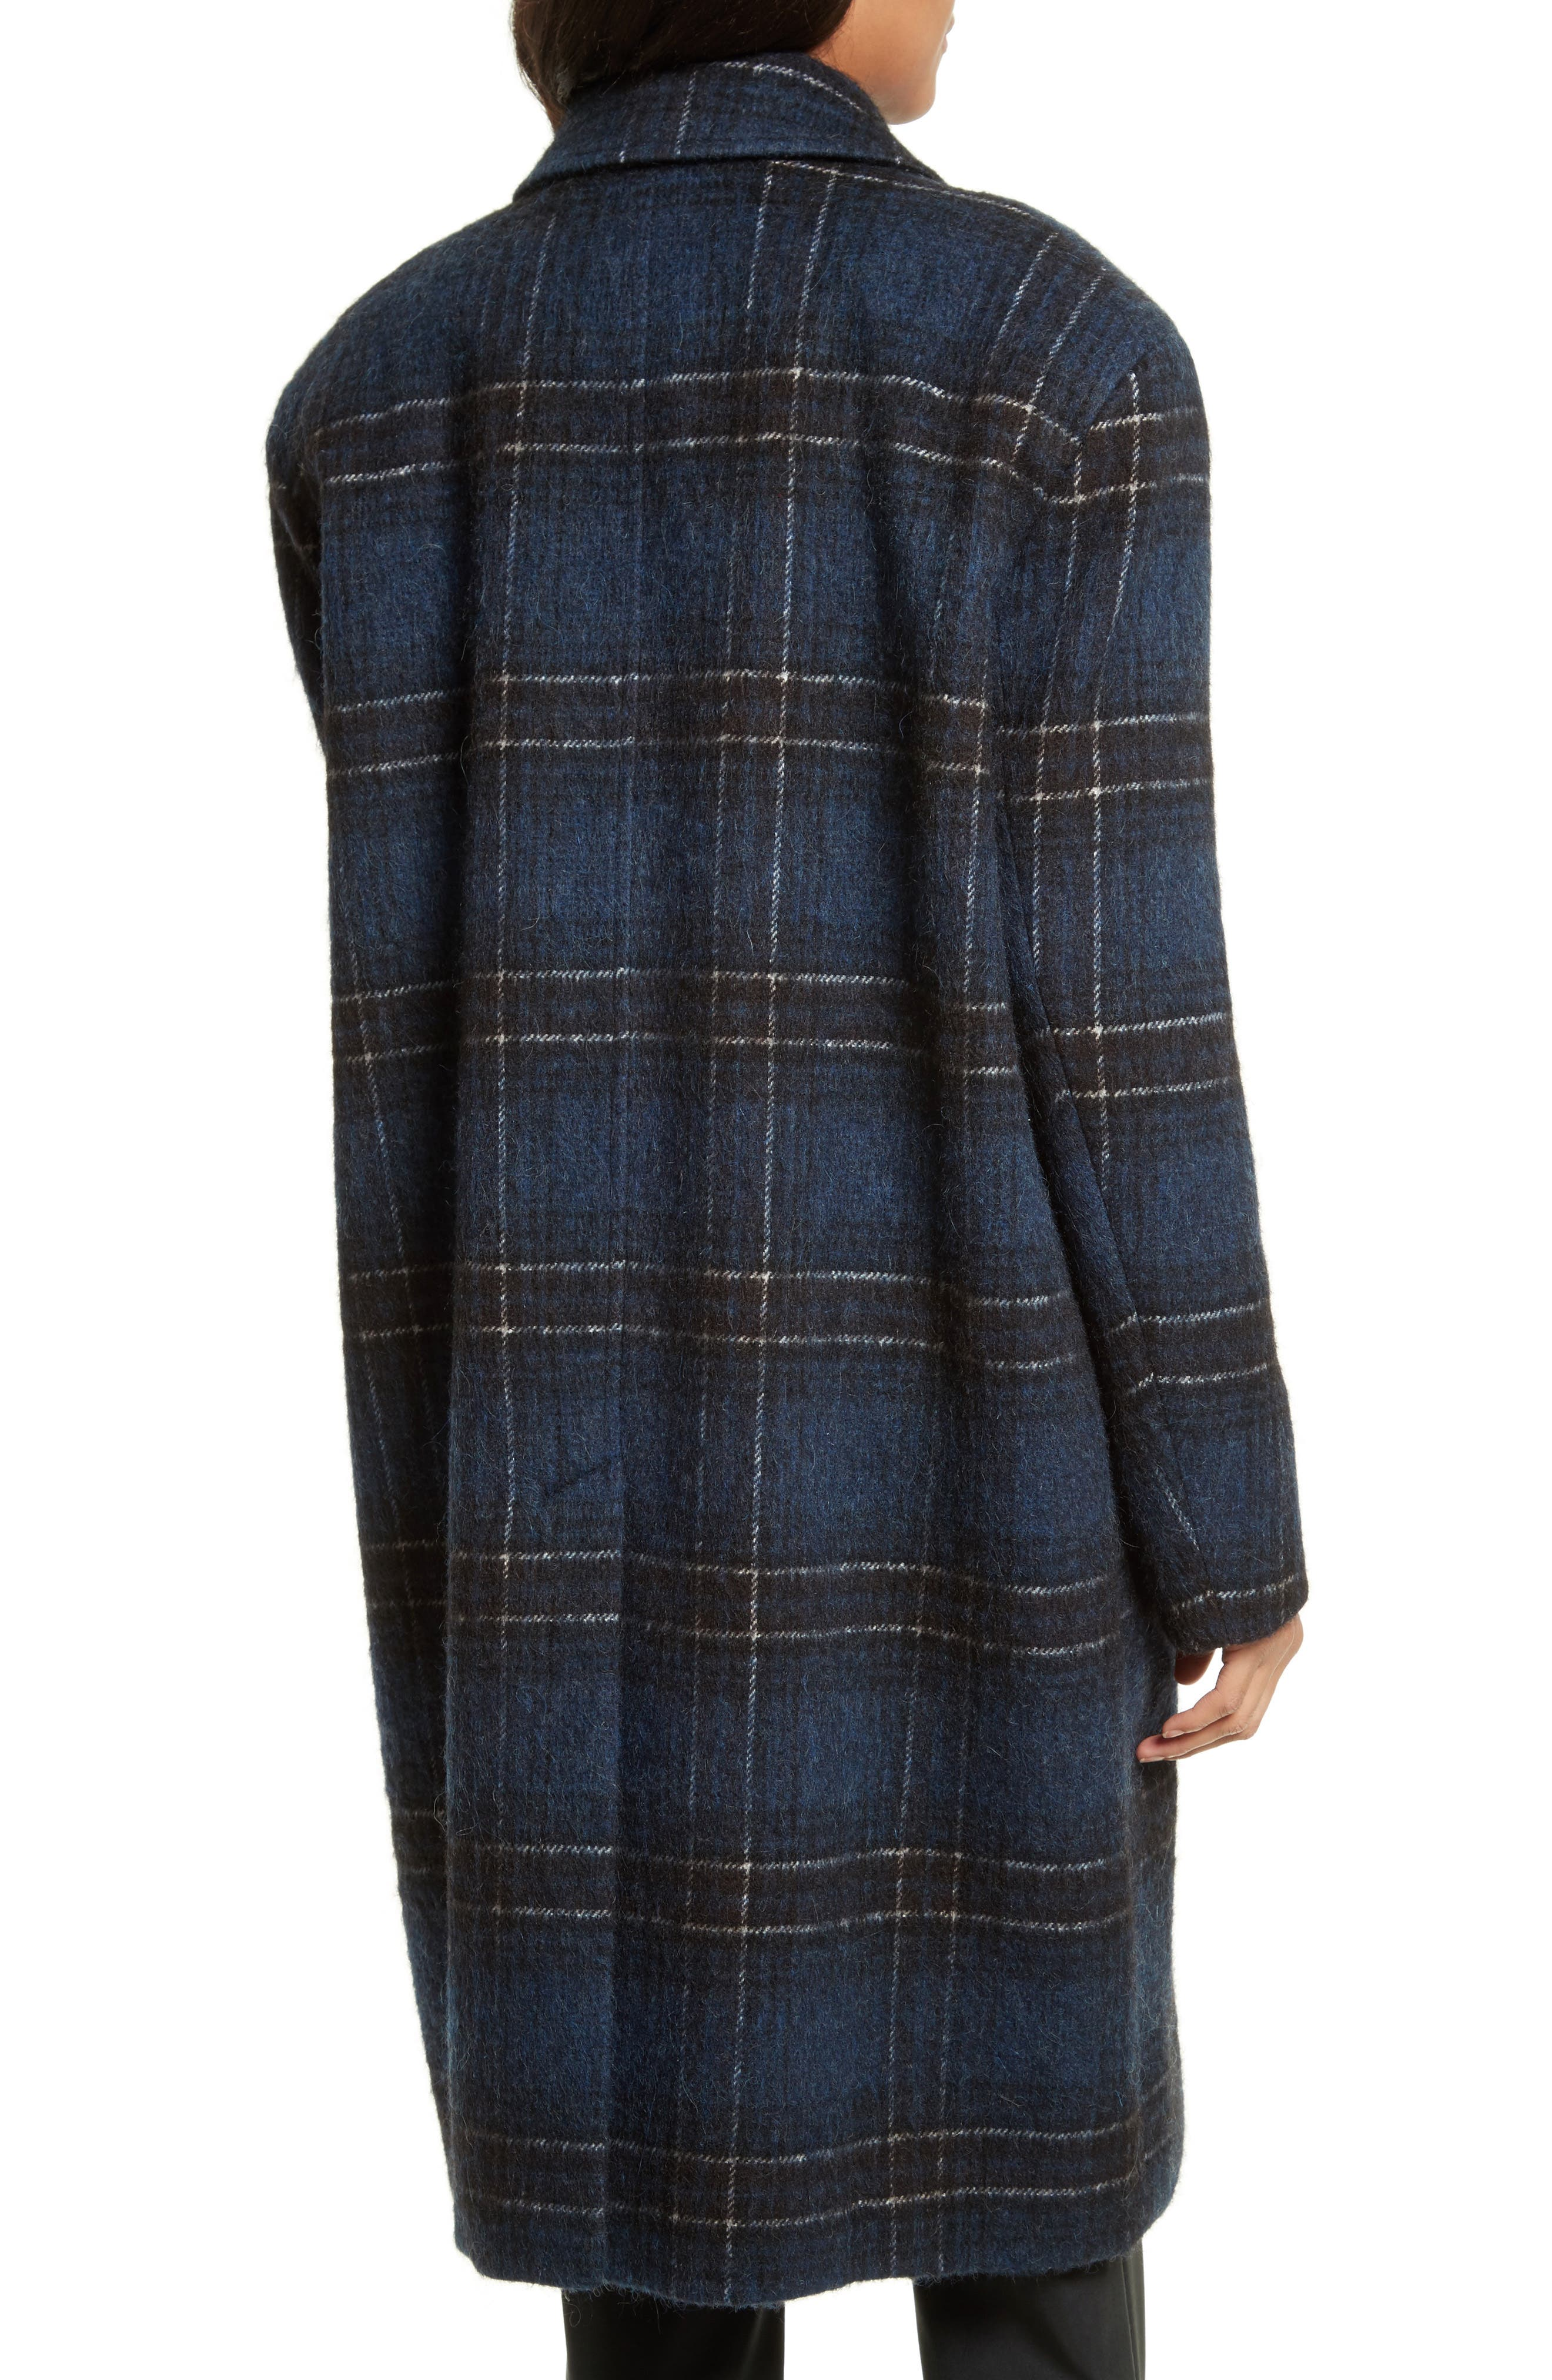 Dominic Plaid Oversize Coat,                             Alternate thumbnail 2, color,                             402